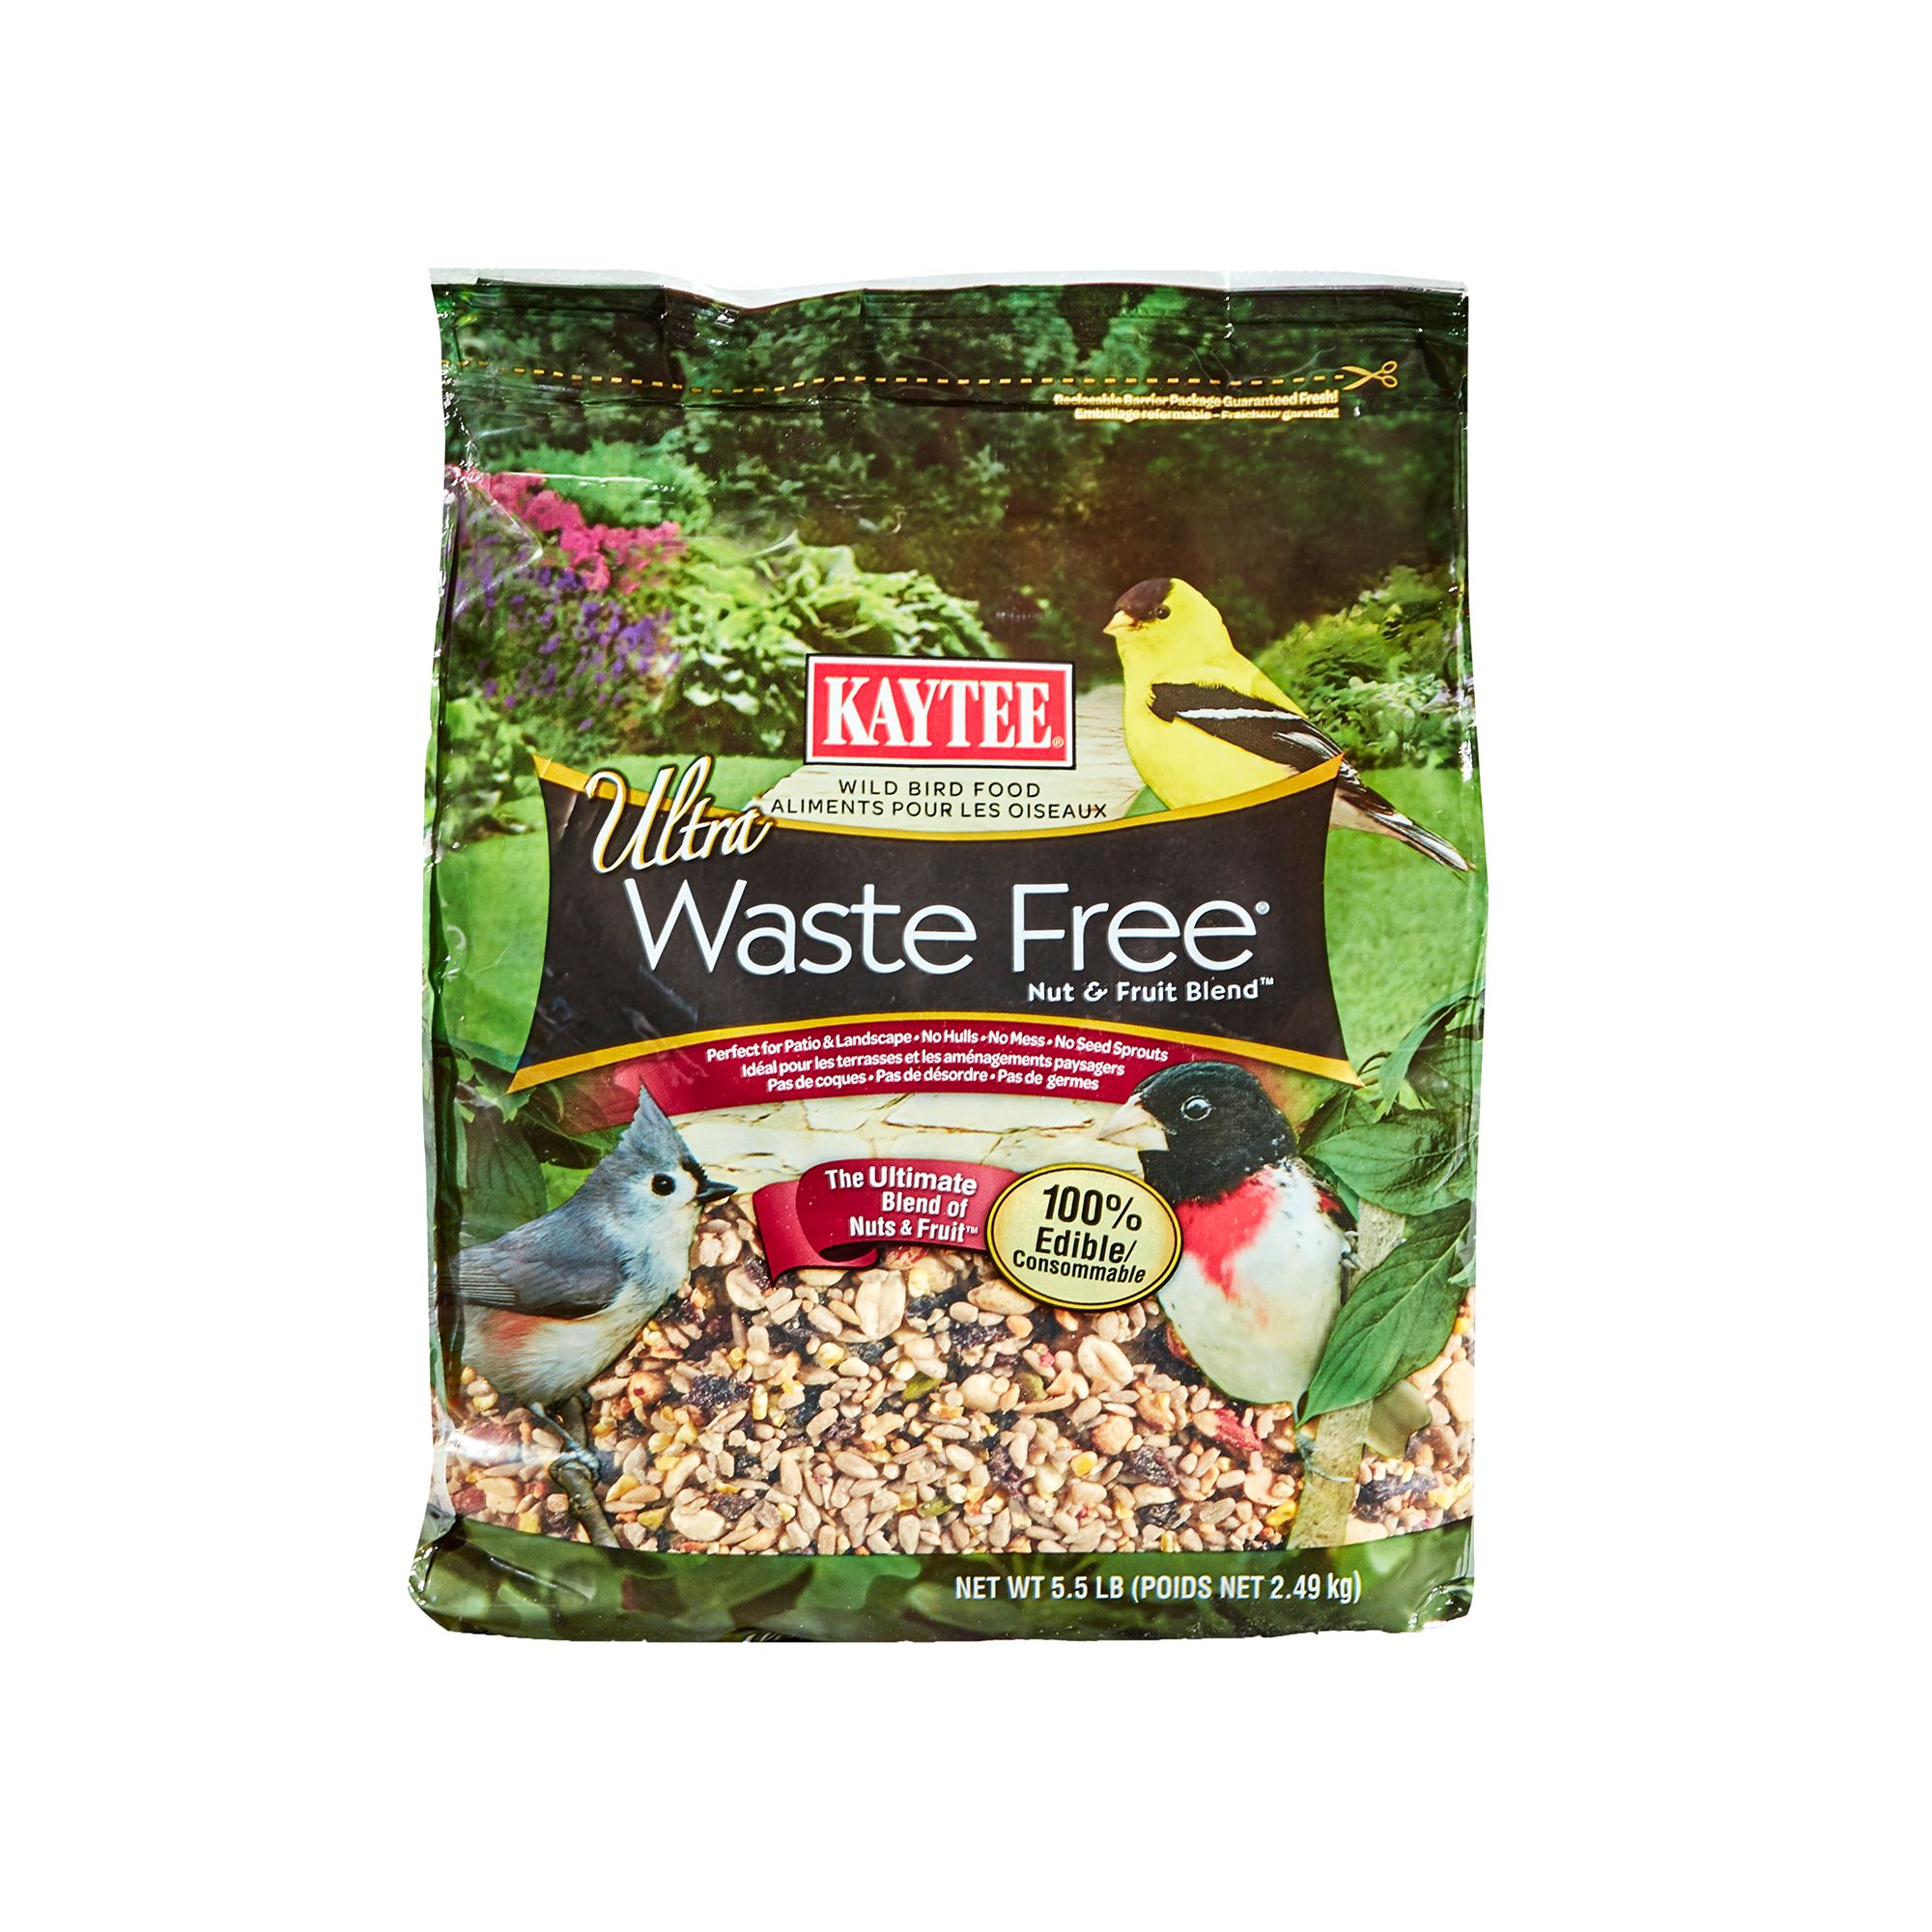 Kaytee Waste Free Nuts and Fruit Blend Wild Bird Food size: 5.5 Lb 5150578